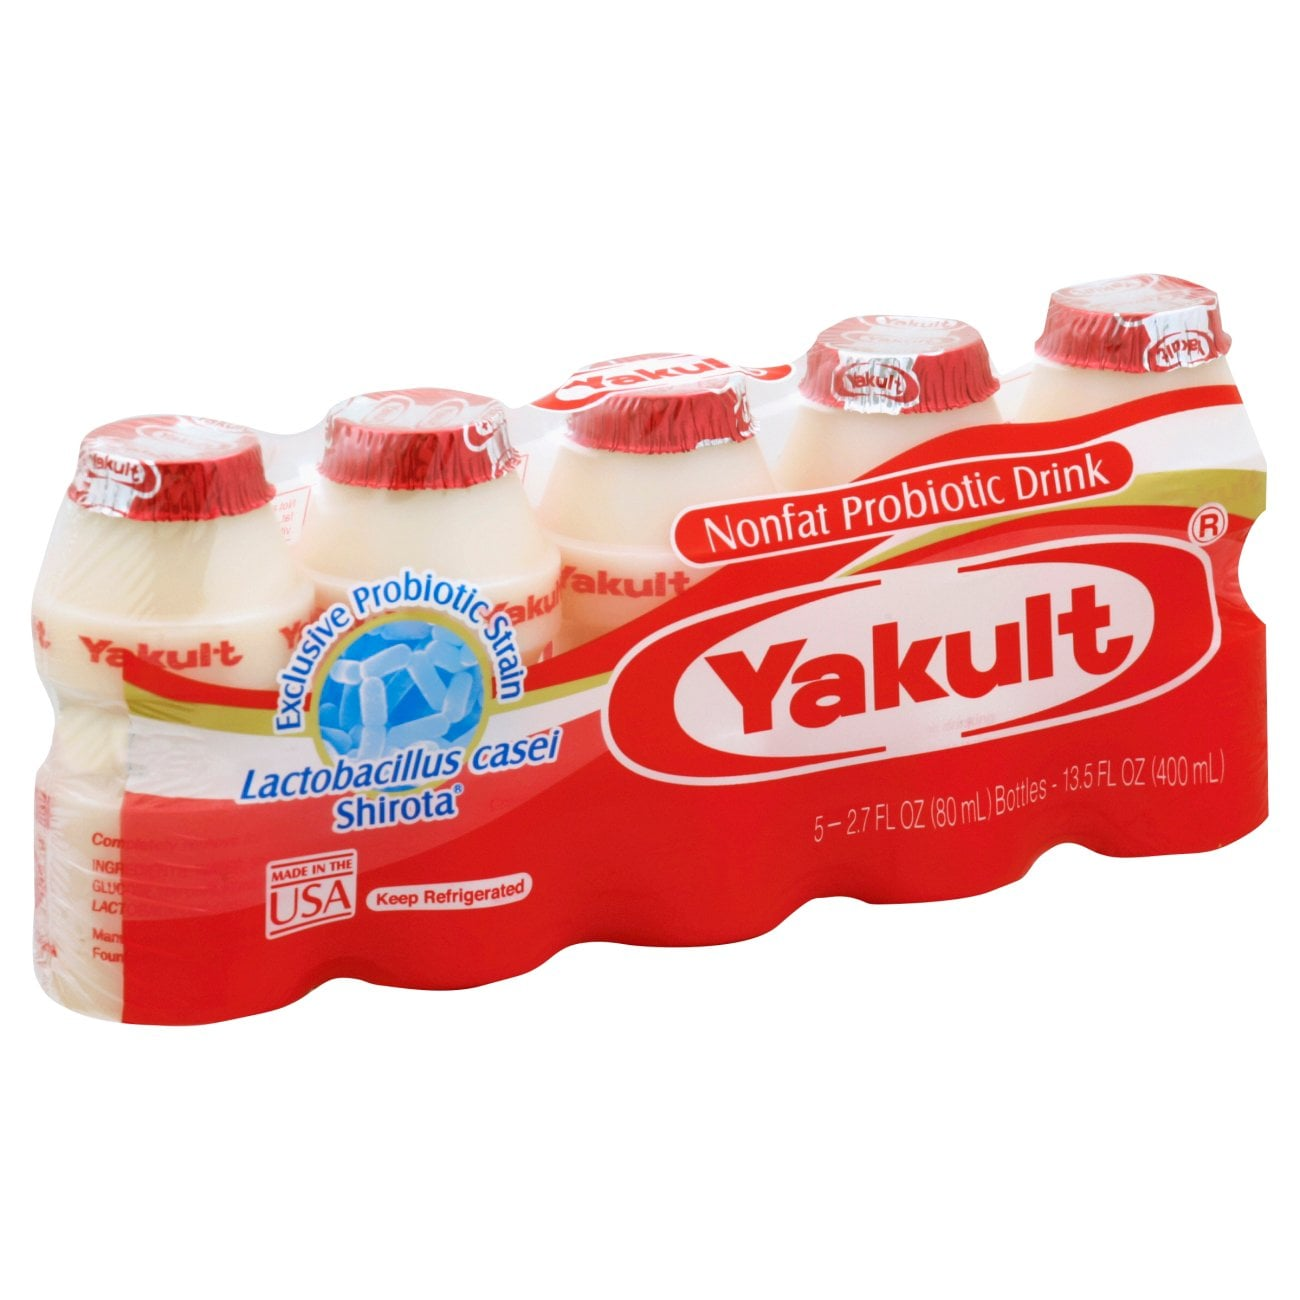 Popsugar Food: What Is Yakult?